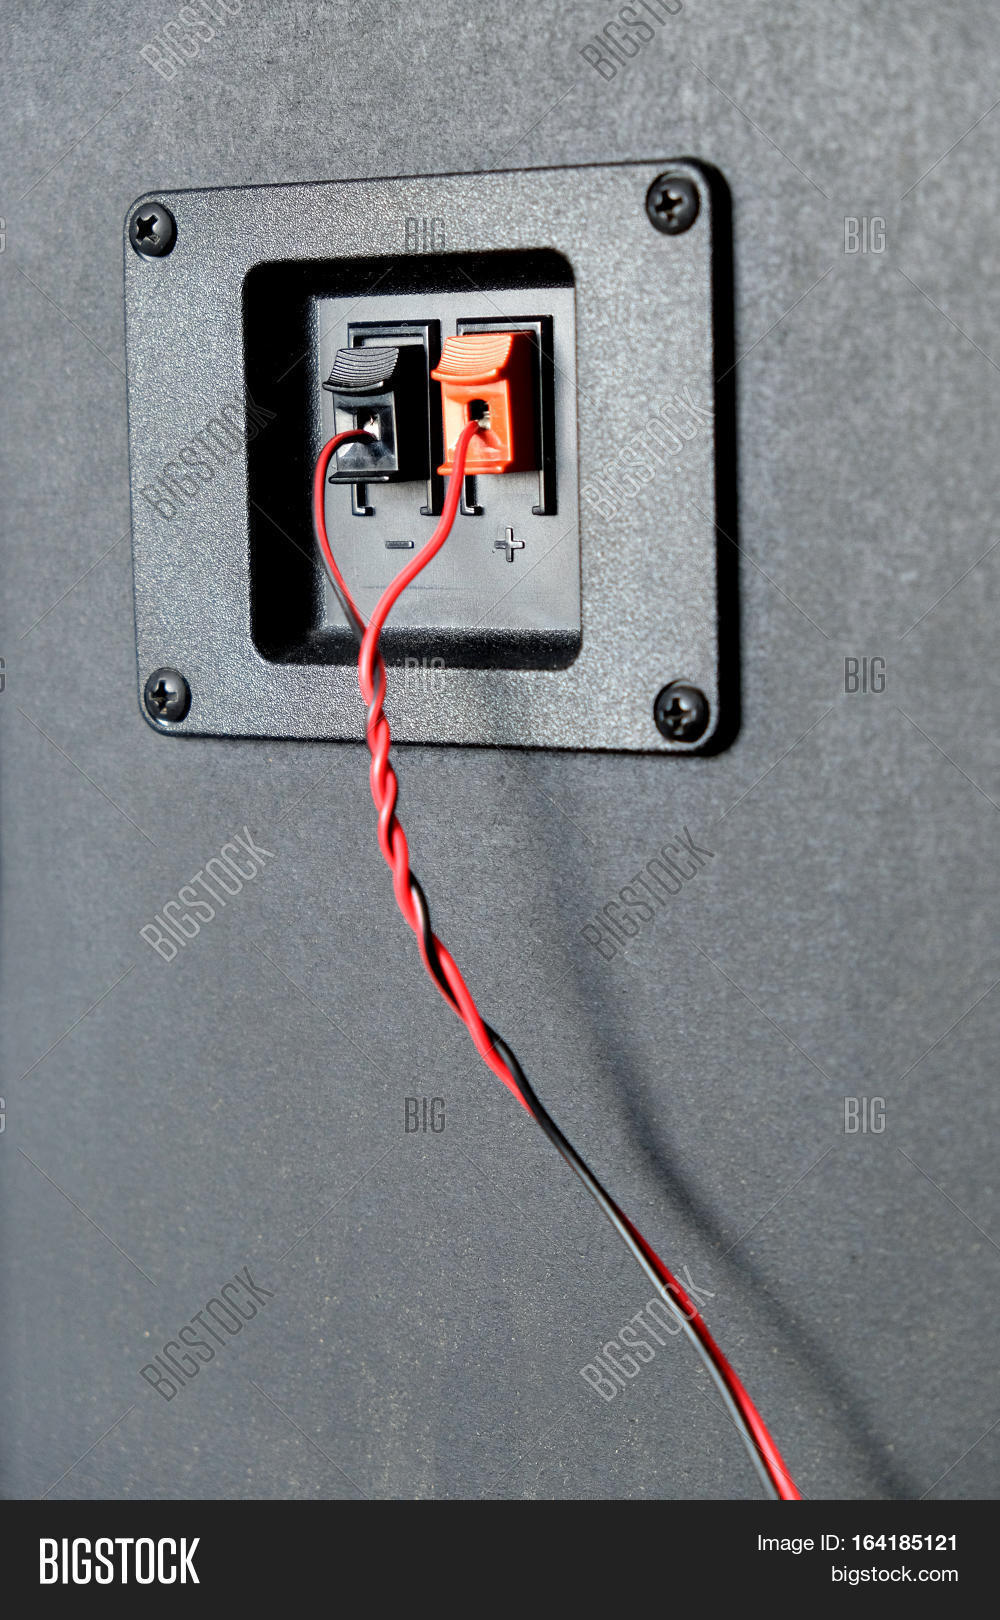 Red Black Twisted Wire Image & Photo (Free Trial) | Bigstock